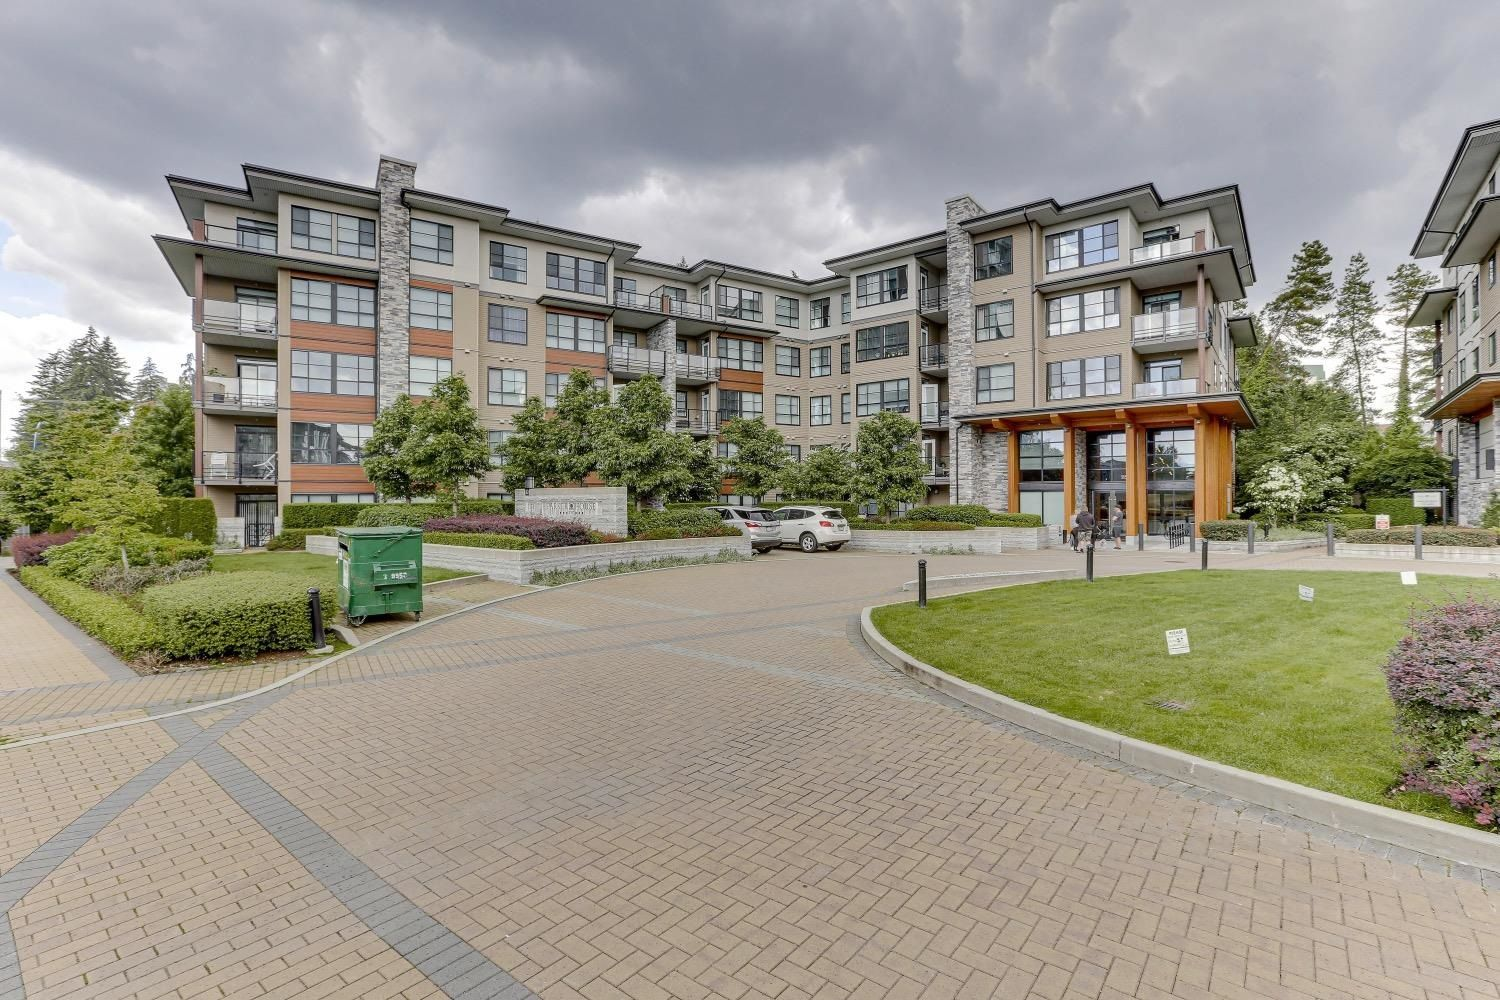 """Main Photo: 504 1151 WINDSOR Mews in Coquitlam: New Horizons Condo for sale in """"PARKER HOUSE"""" : MLS®# R2619662"""